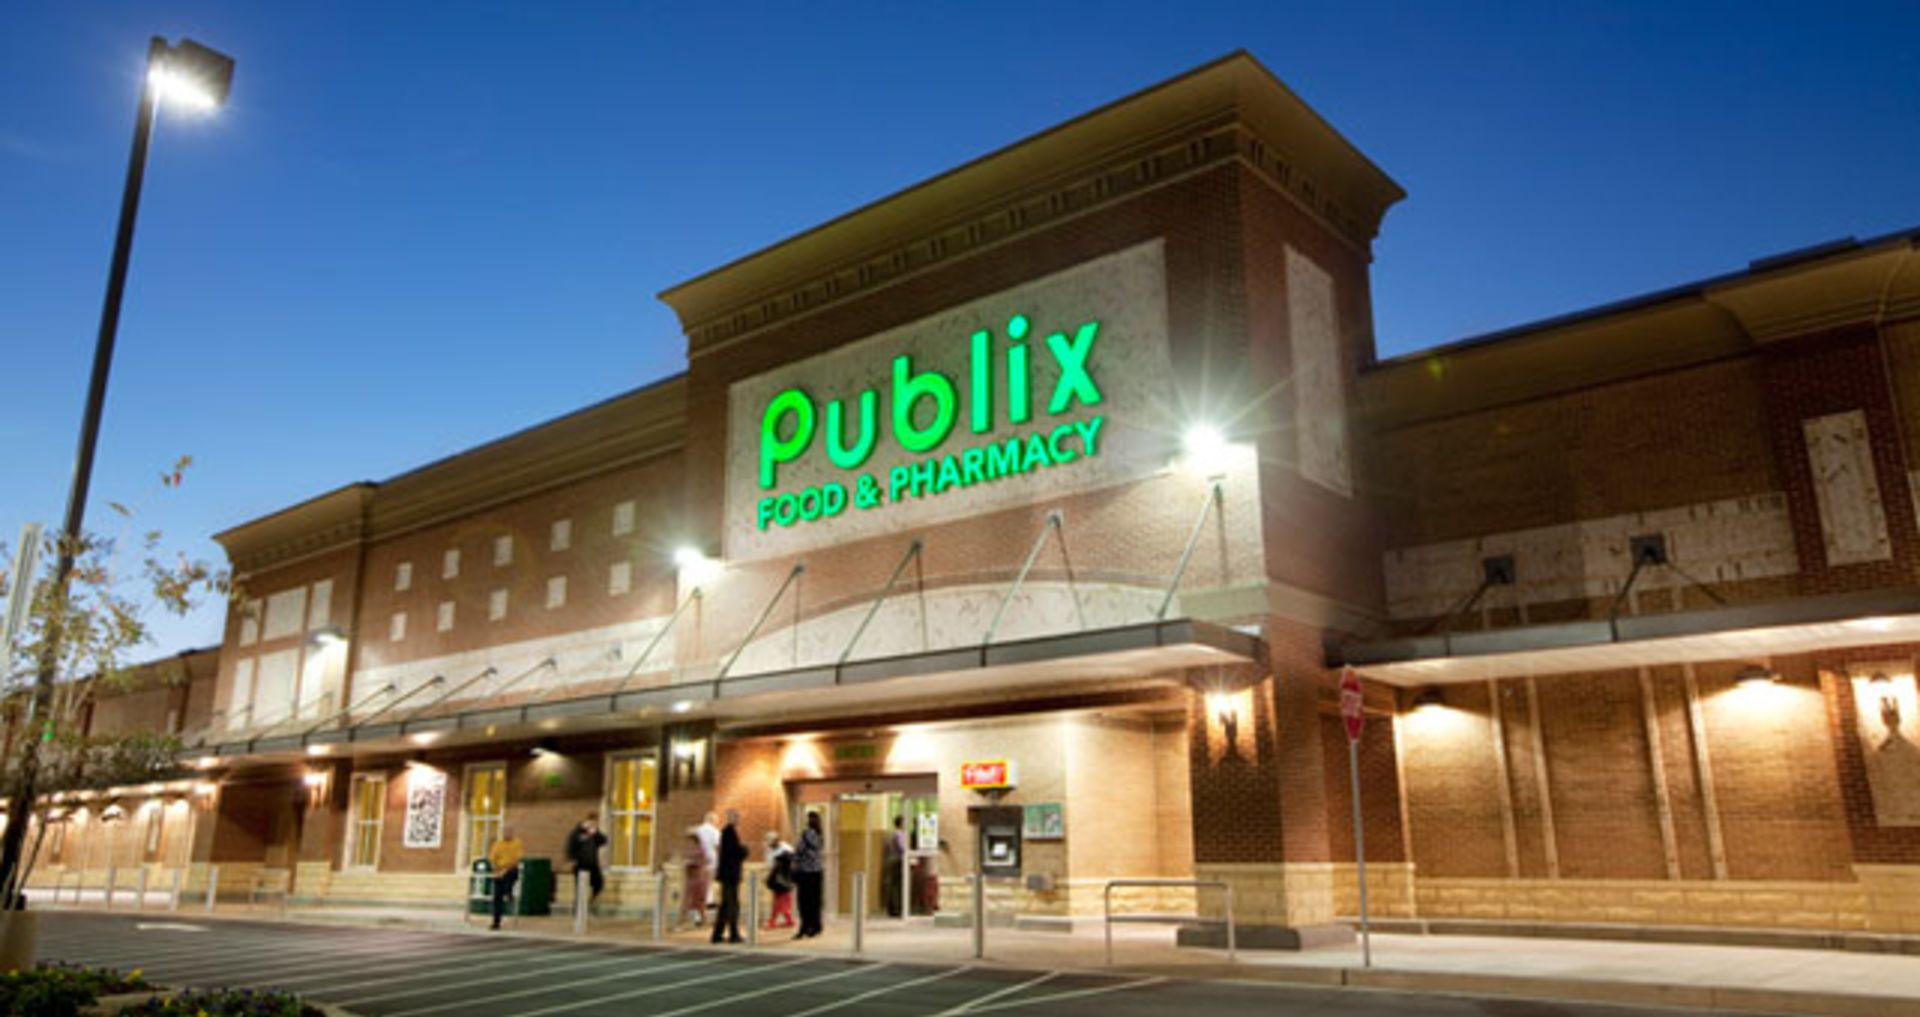 Gastonia Gets a Grocery Upgrade